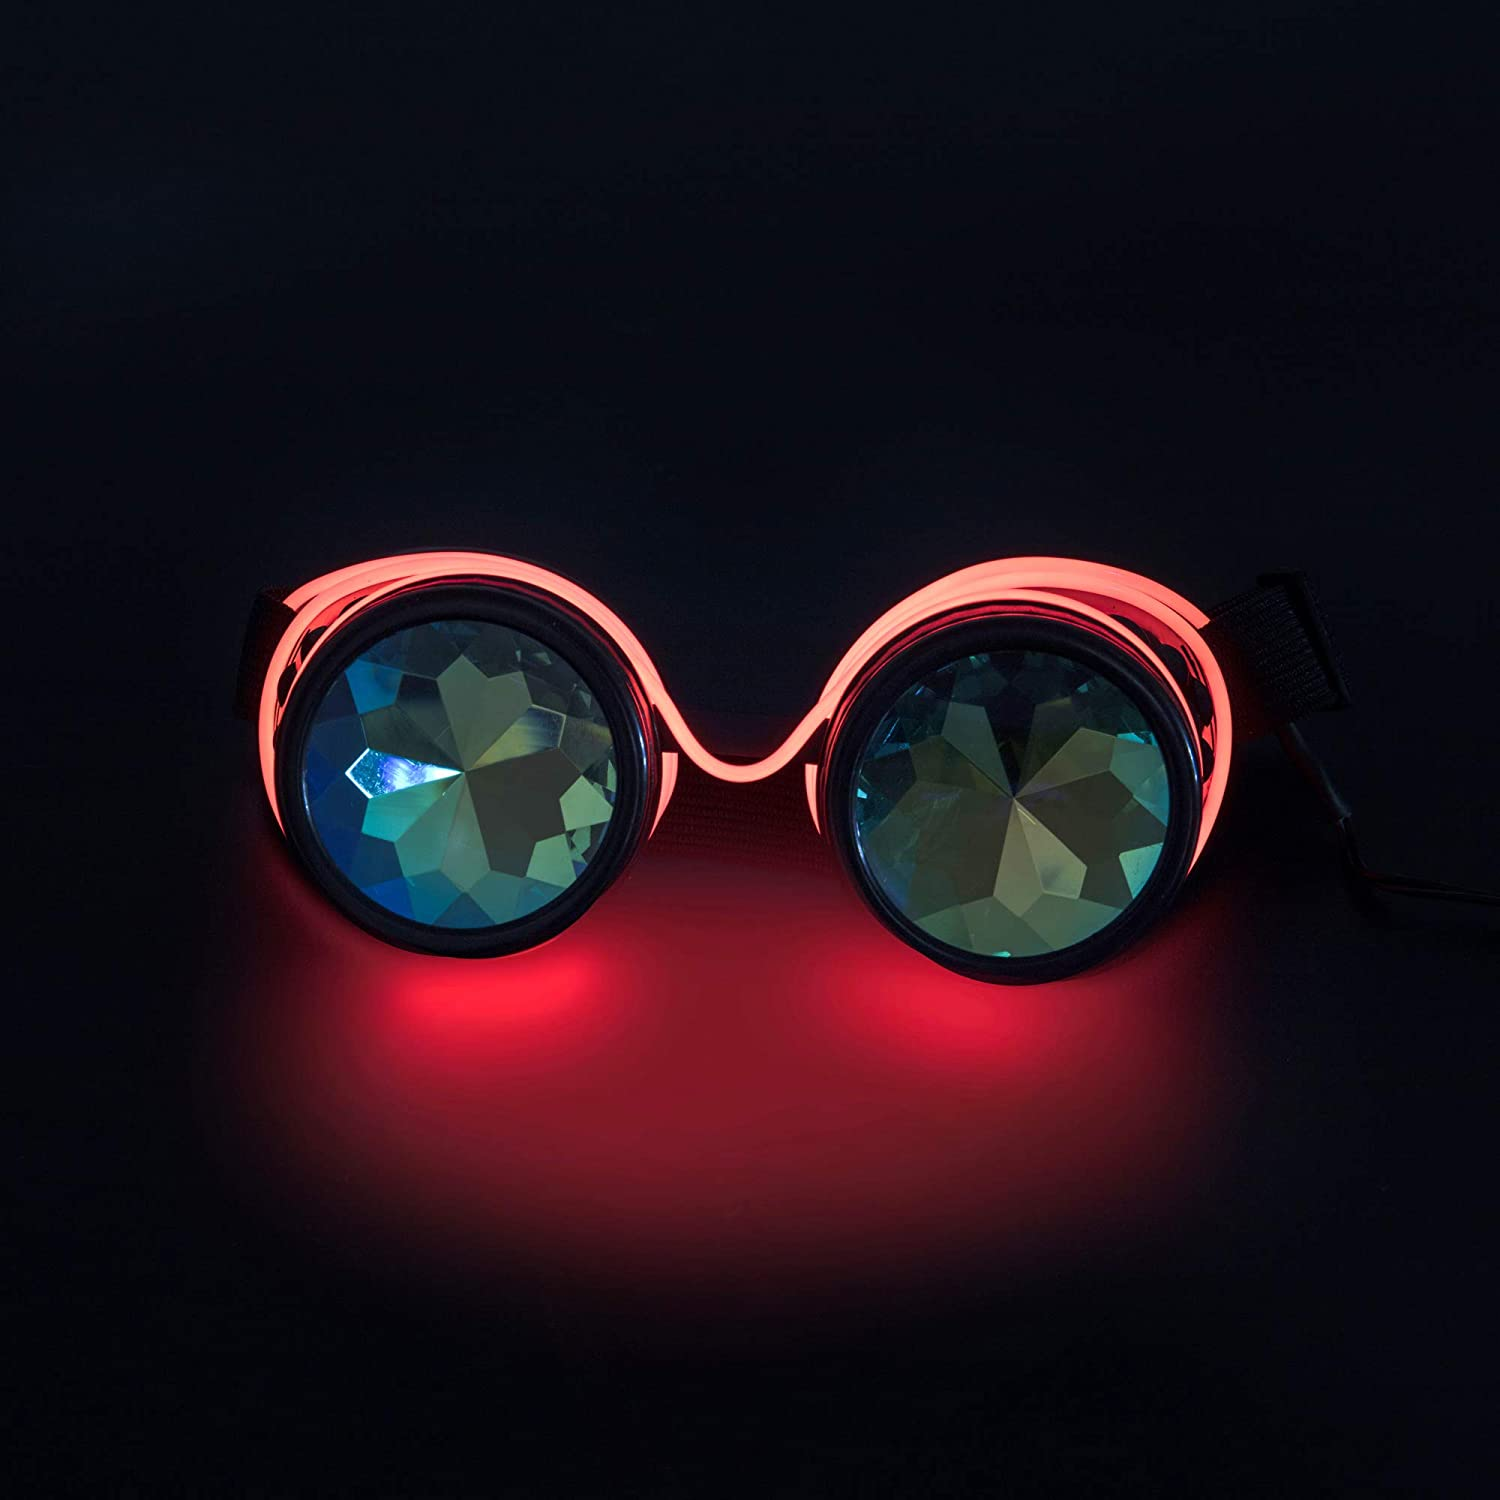 FOCUSSEXY Kaleidoscope Glasses Rave Crystal Prism Steampunk Goggle Fashion